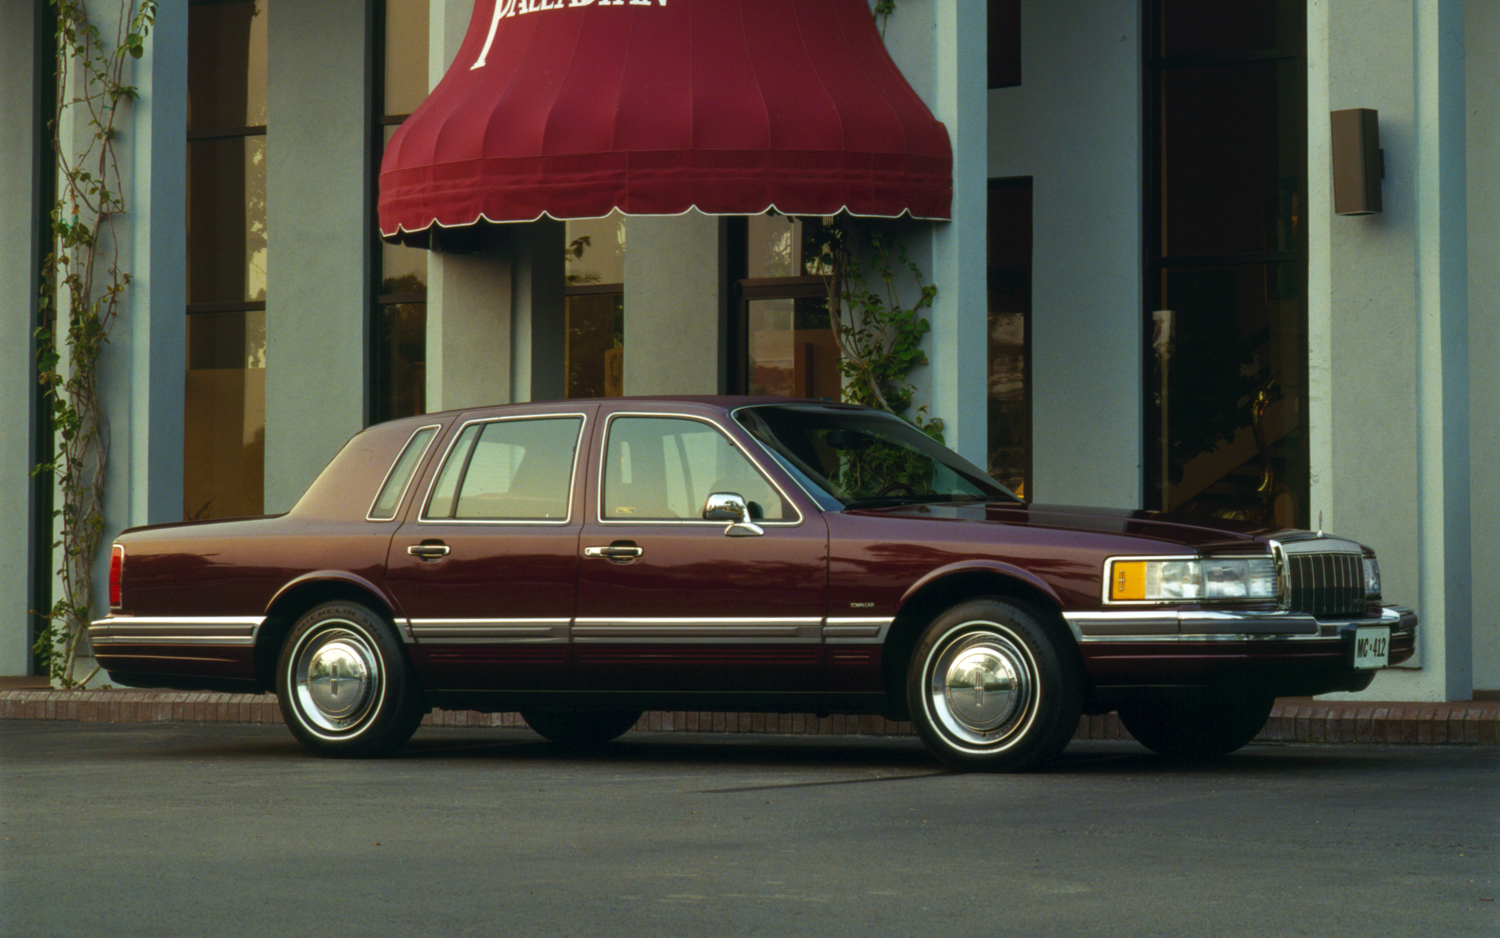 1990 lincoln town car size 1 2 mb resolution 1500x938 type link file src